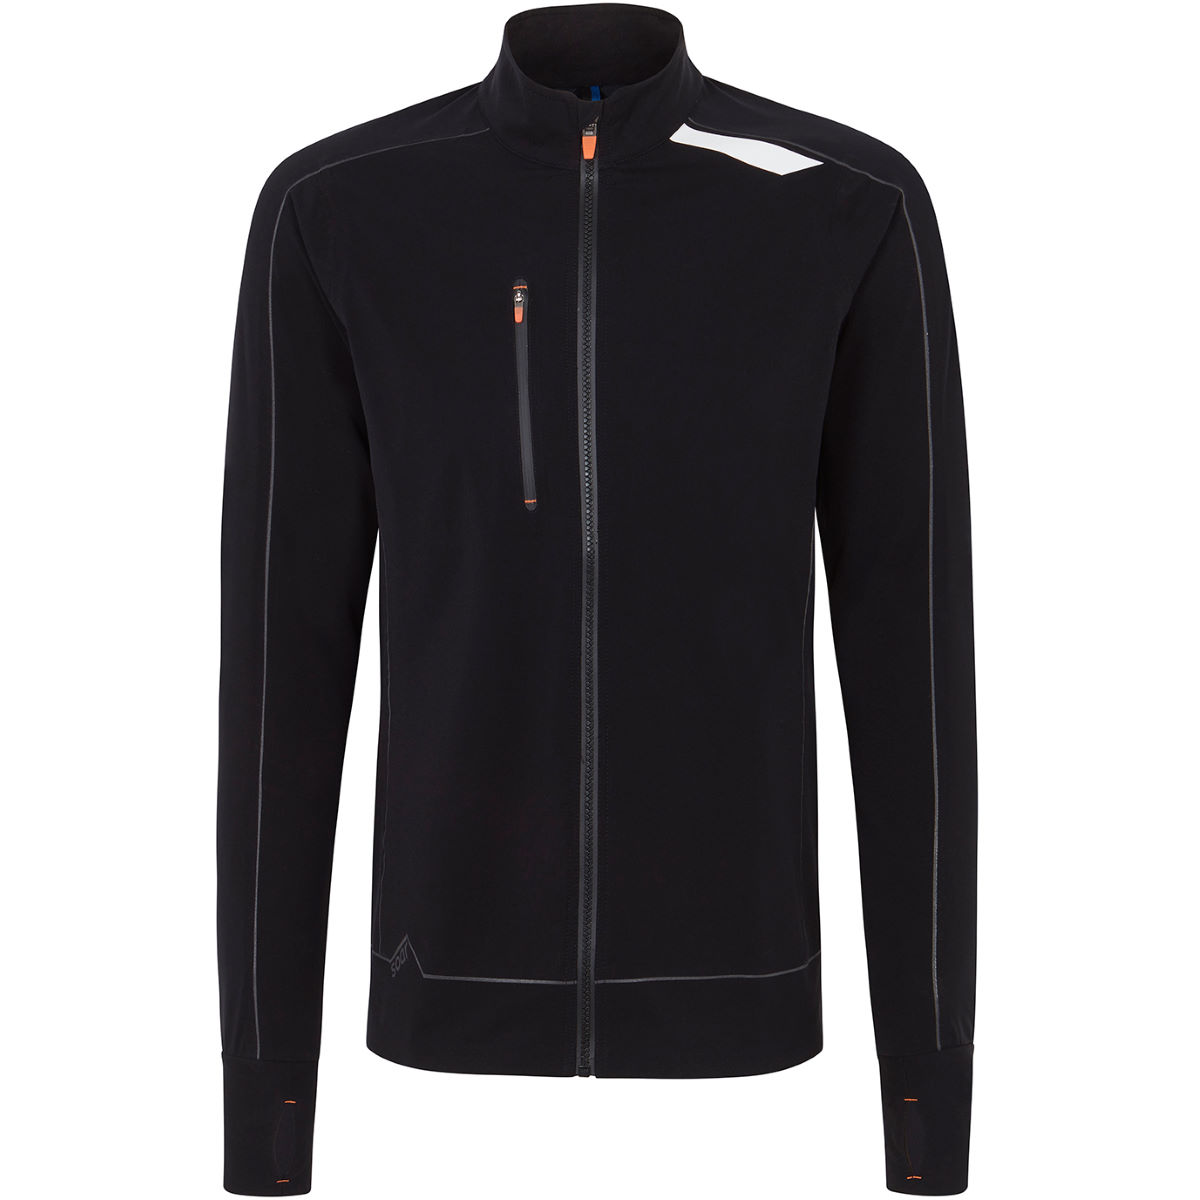 Soar Running All Weather Jacket - Chaquetas